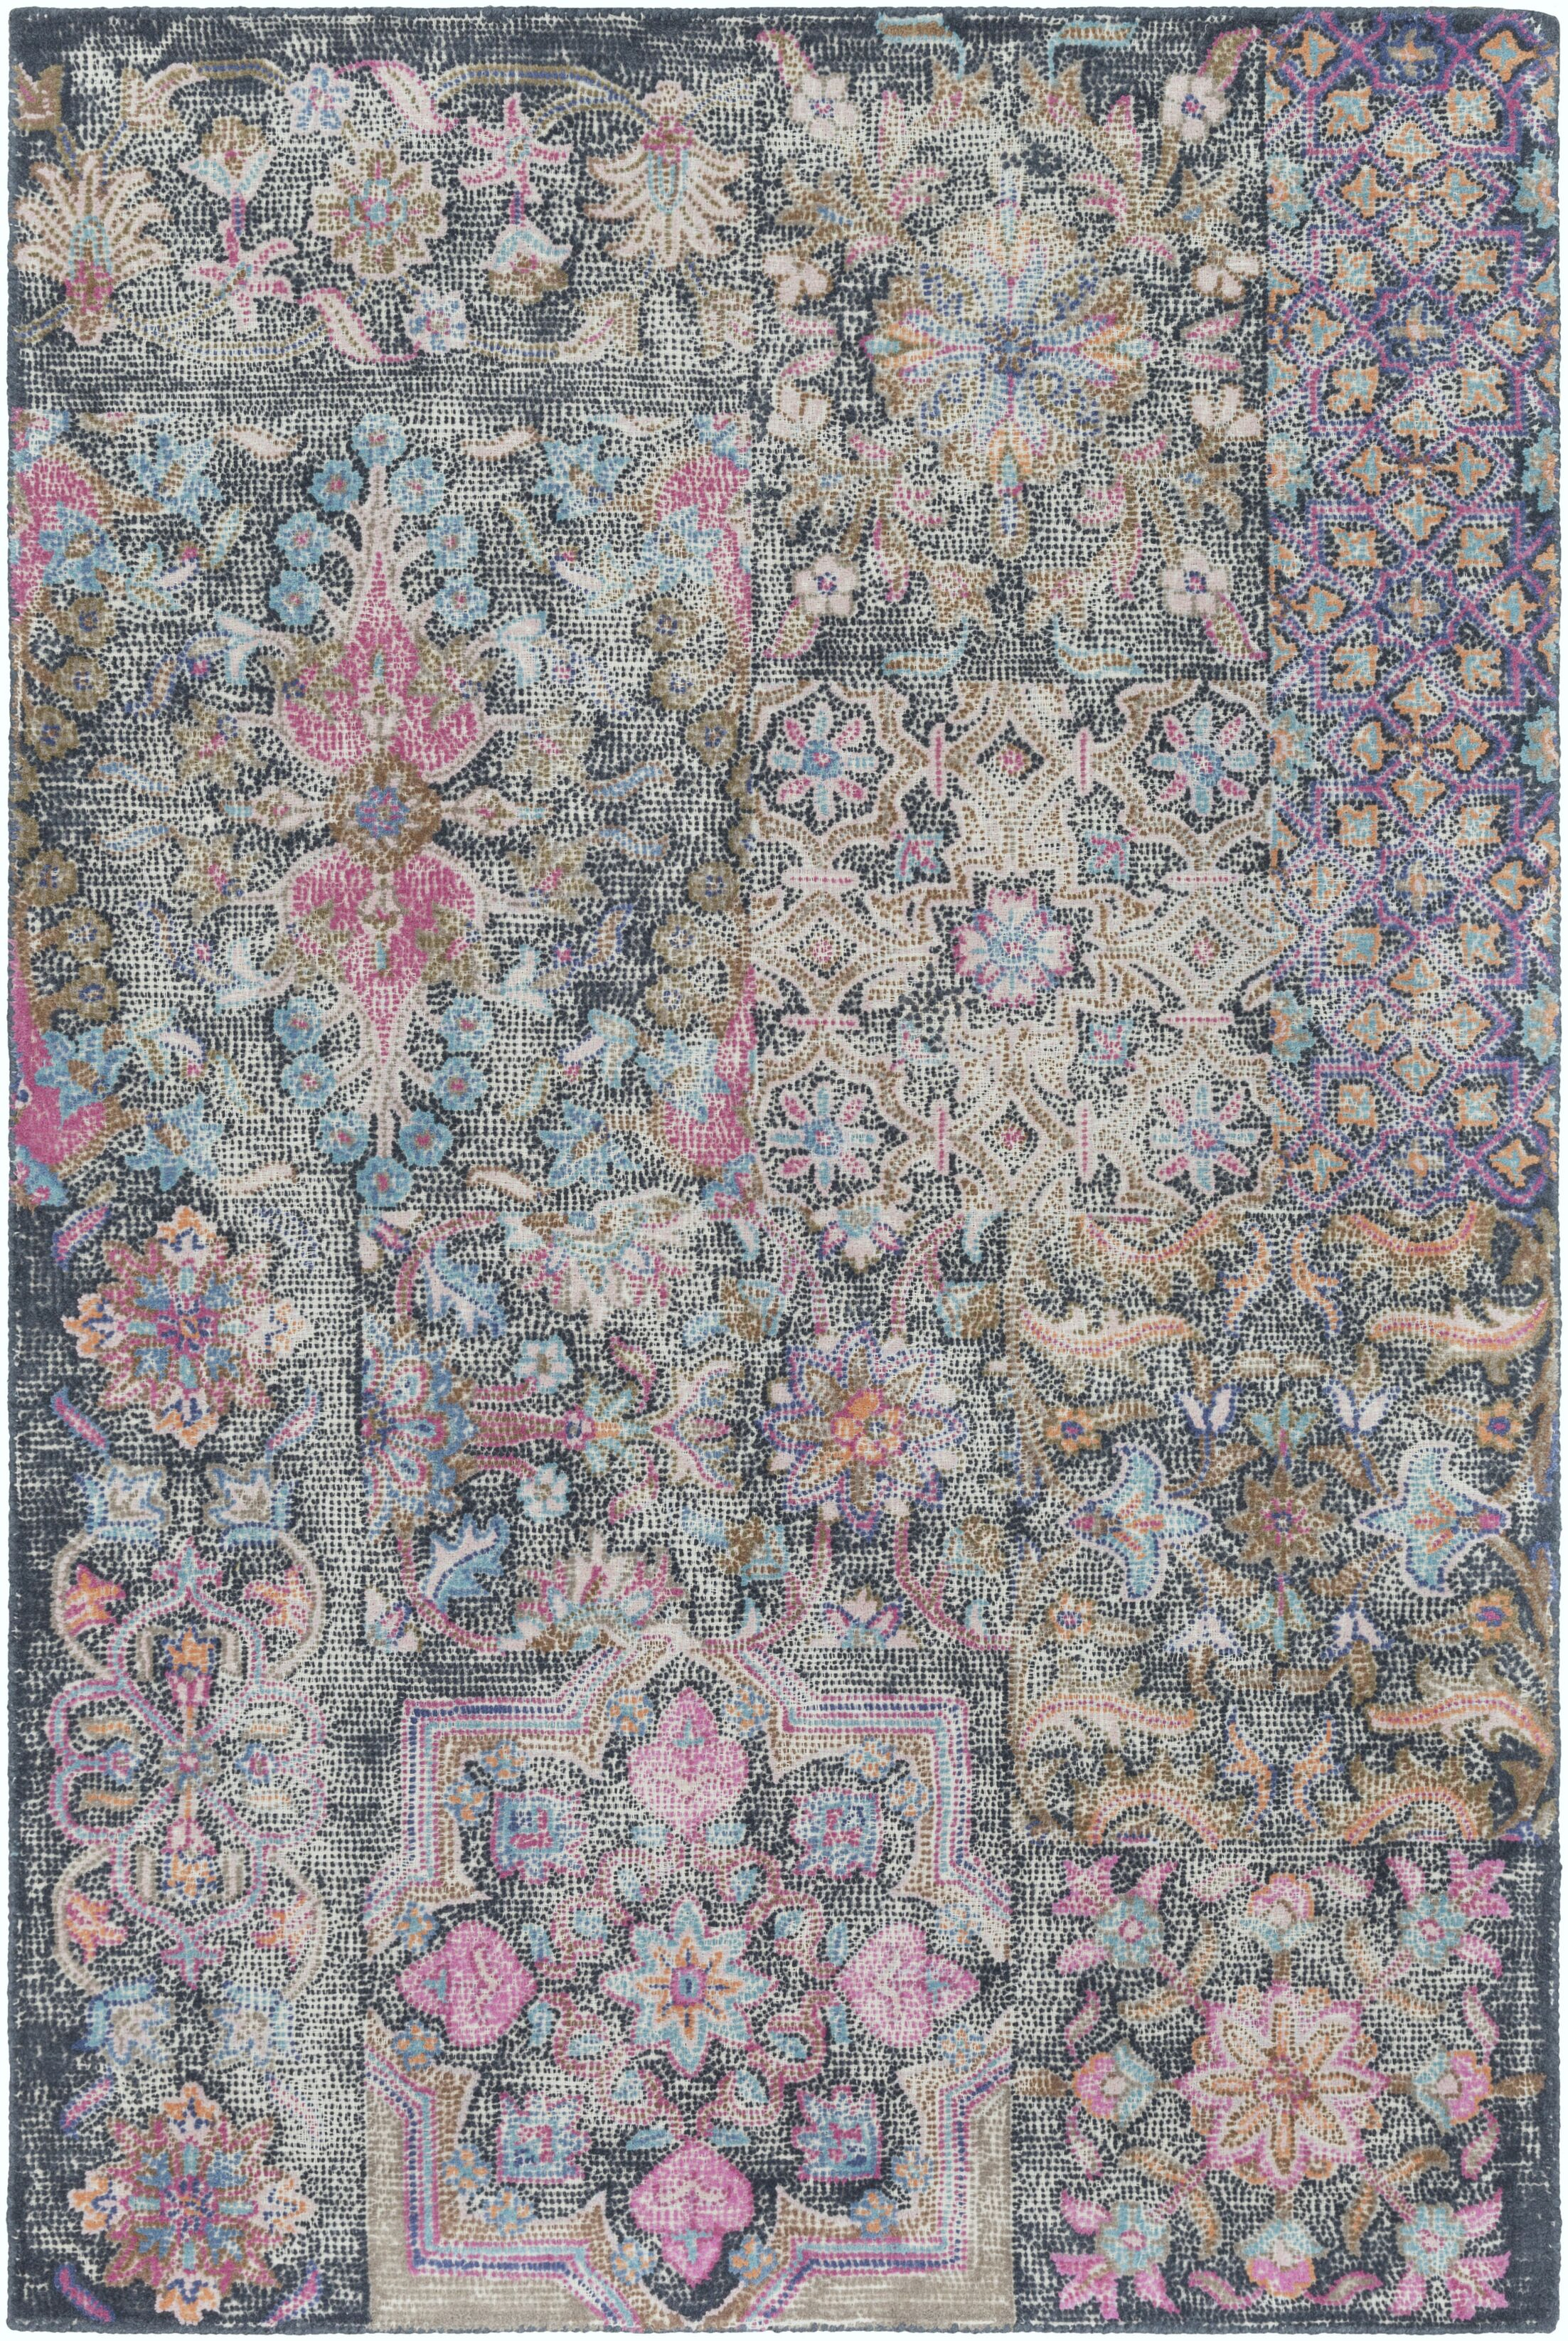 Knowland Hand-Tufted Bright Pink/Blush Area Rug Rug Size: Rectangle 8' x 10'